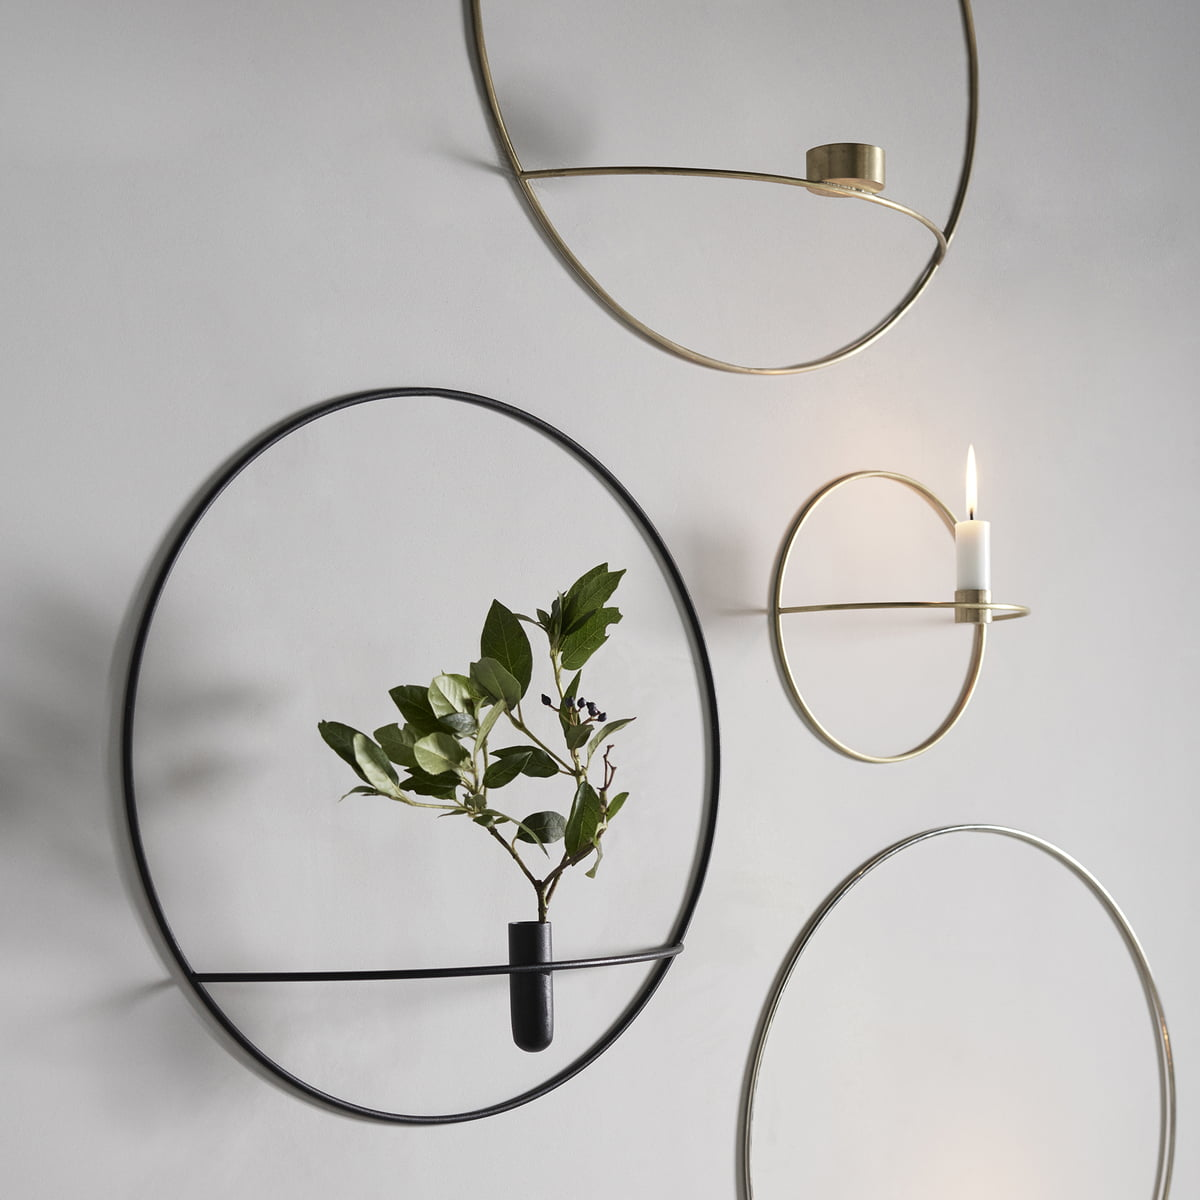 pov circle candleholder by menu connox. Black Bedroom Furniture Sets. Home Design Ideas